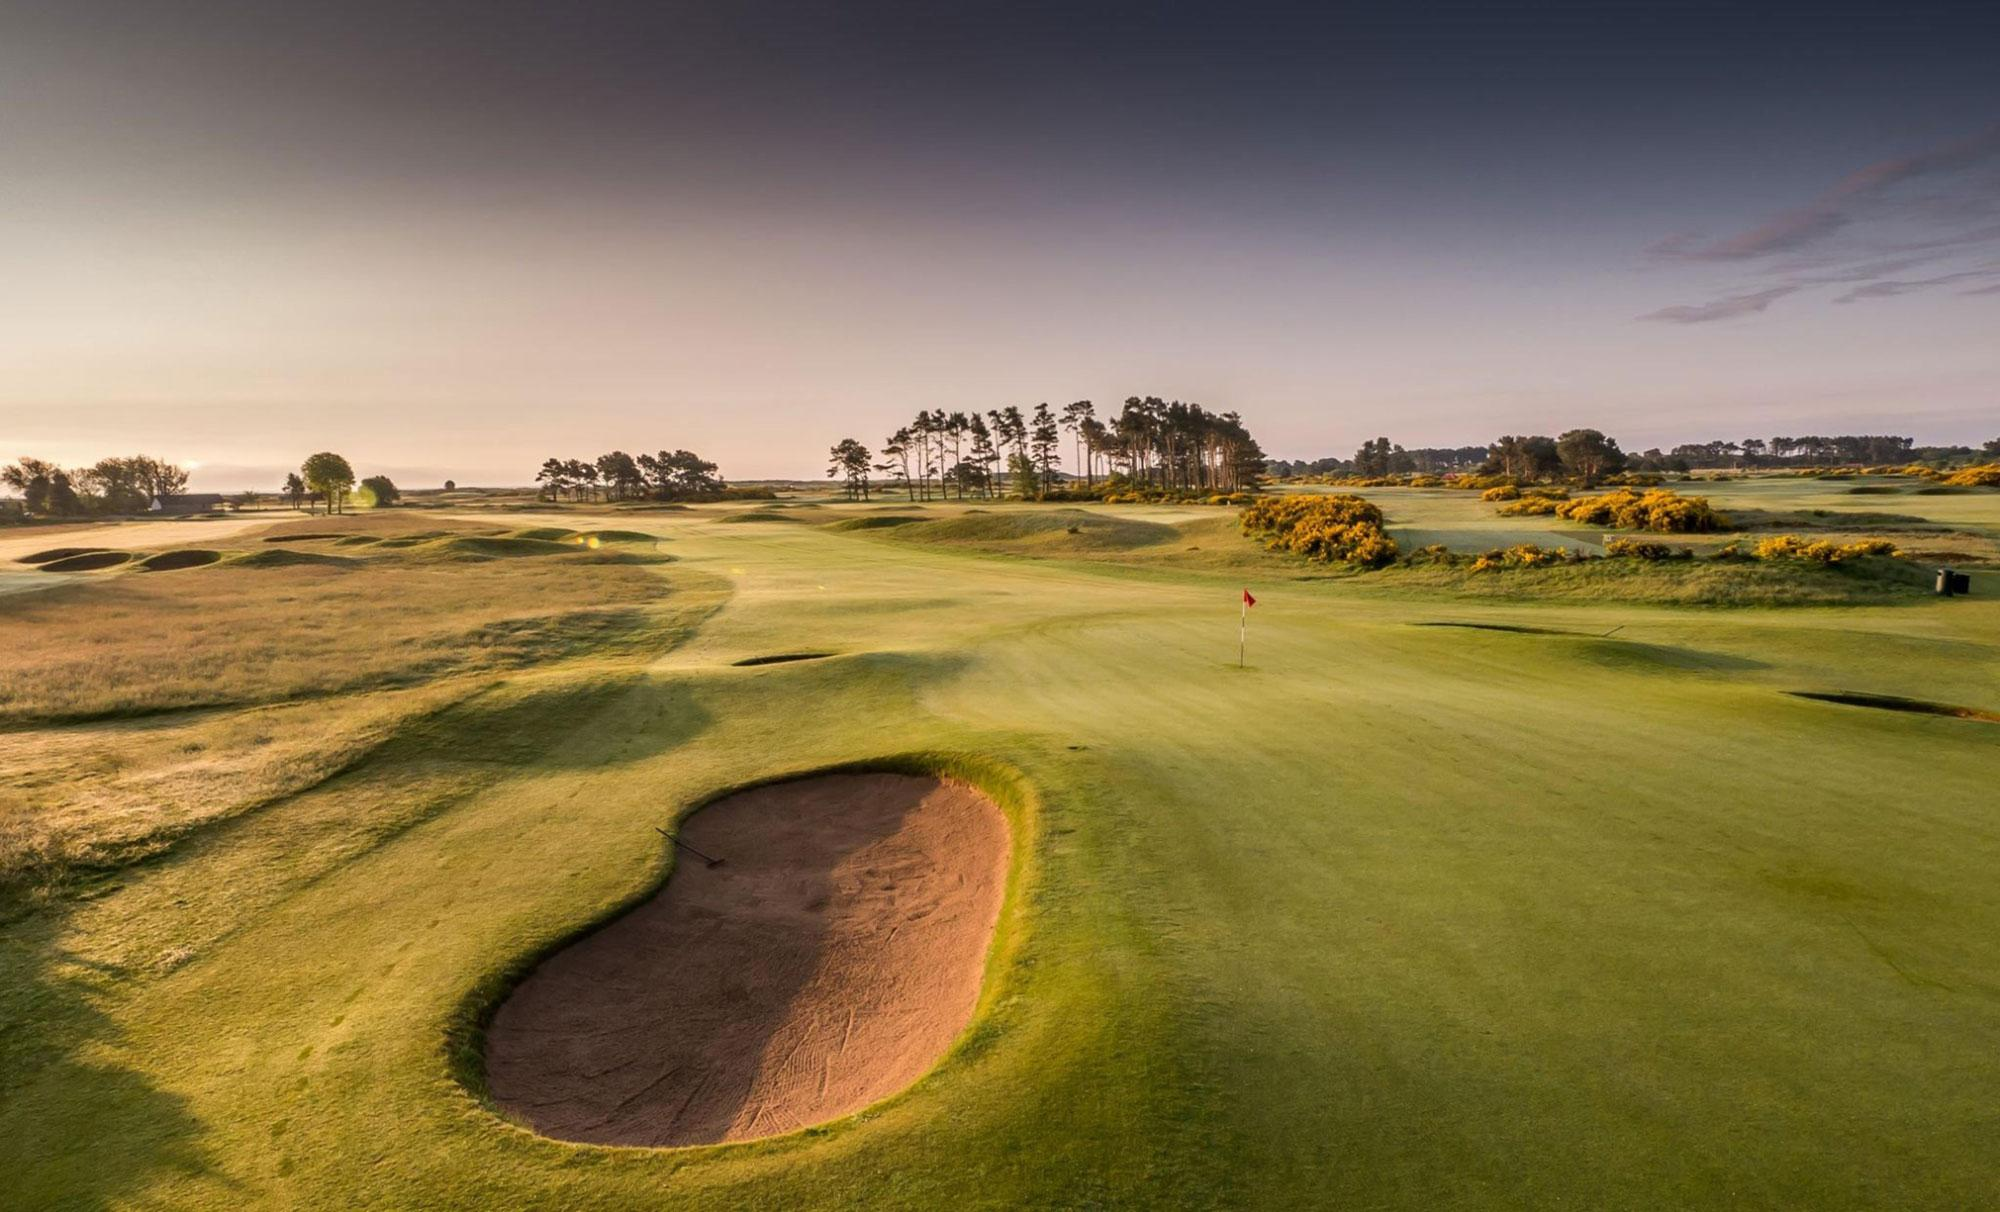 View Carnoustie Golf Links's picturesque golf course situated in incredible Scotland.